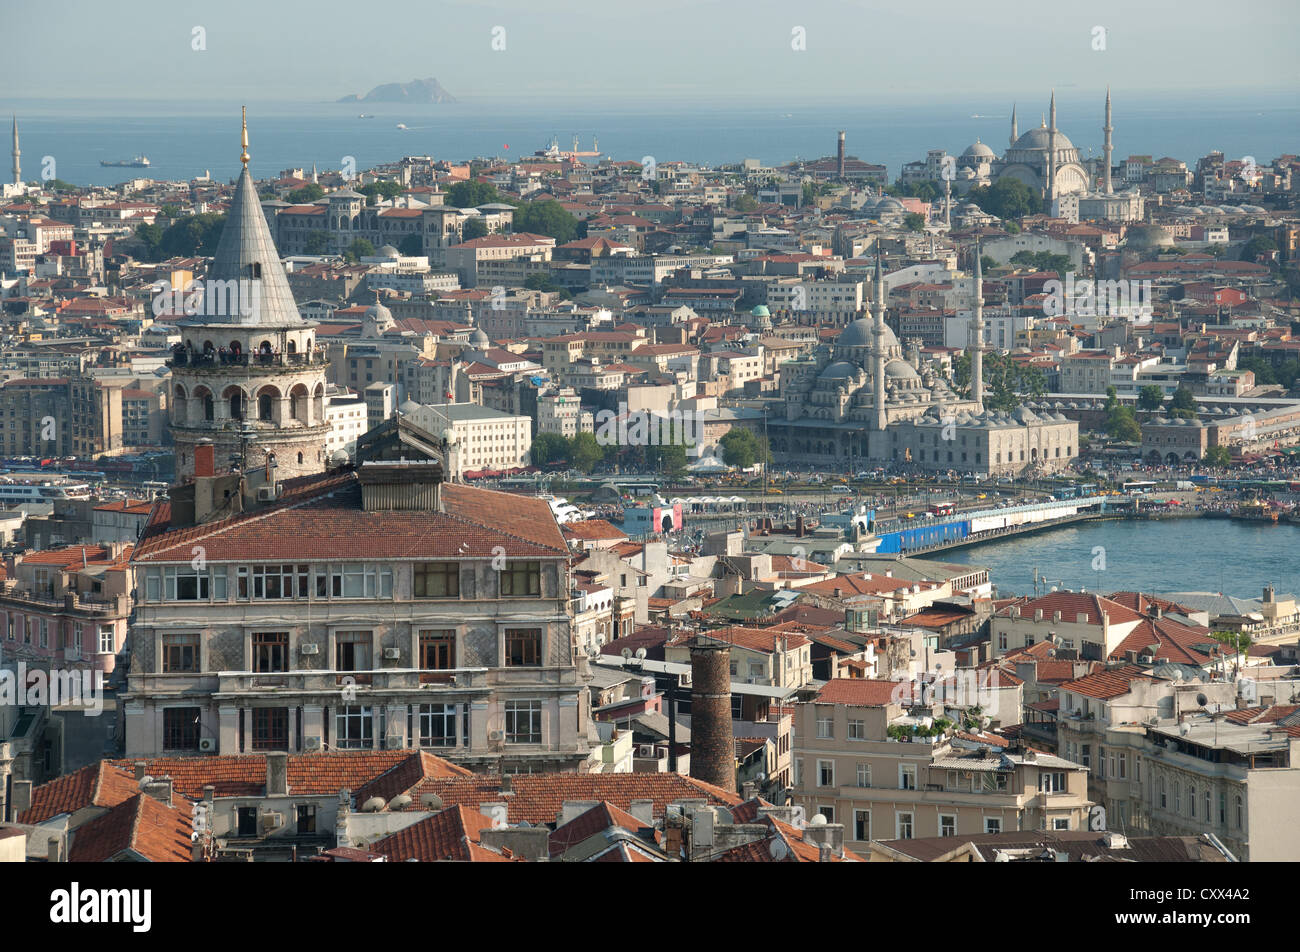 ISTANBUL, TURKEY. A view over the rooftops of Beyoglu to the historic centre of the old city. 2012. - Stock Image